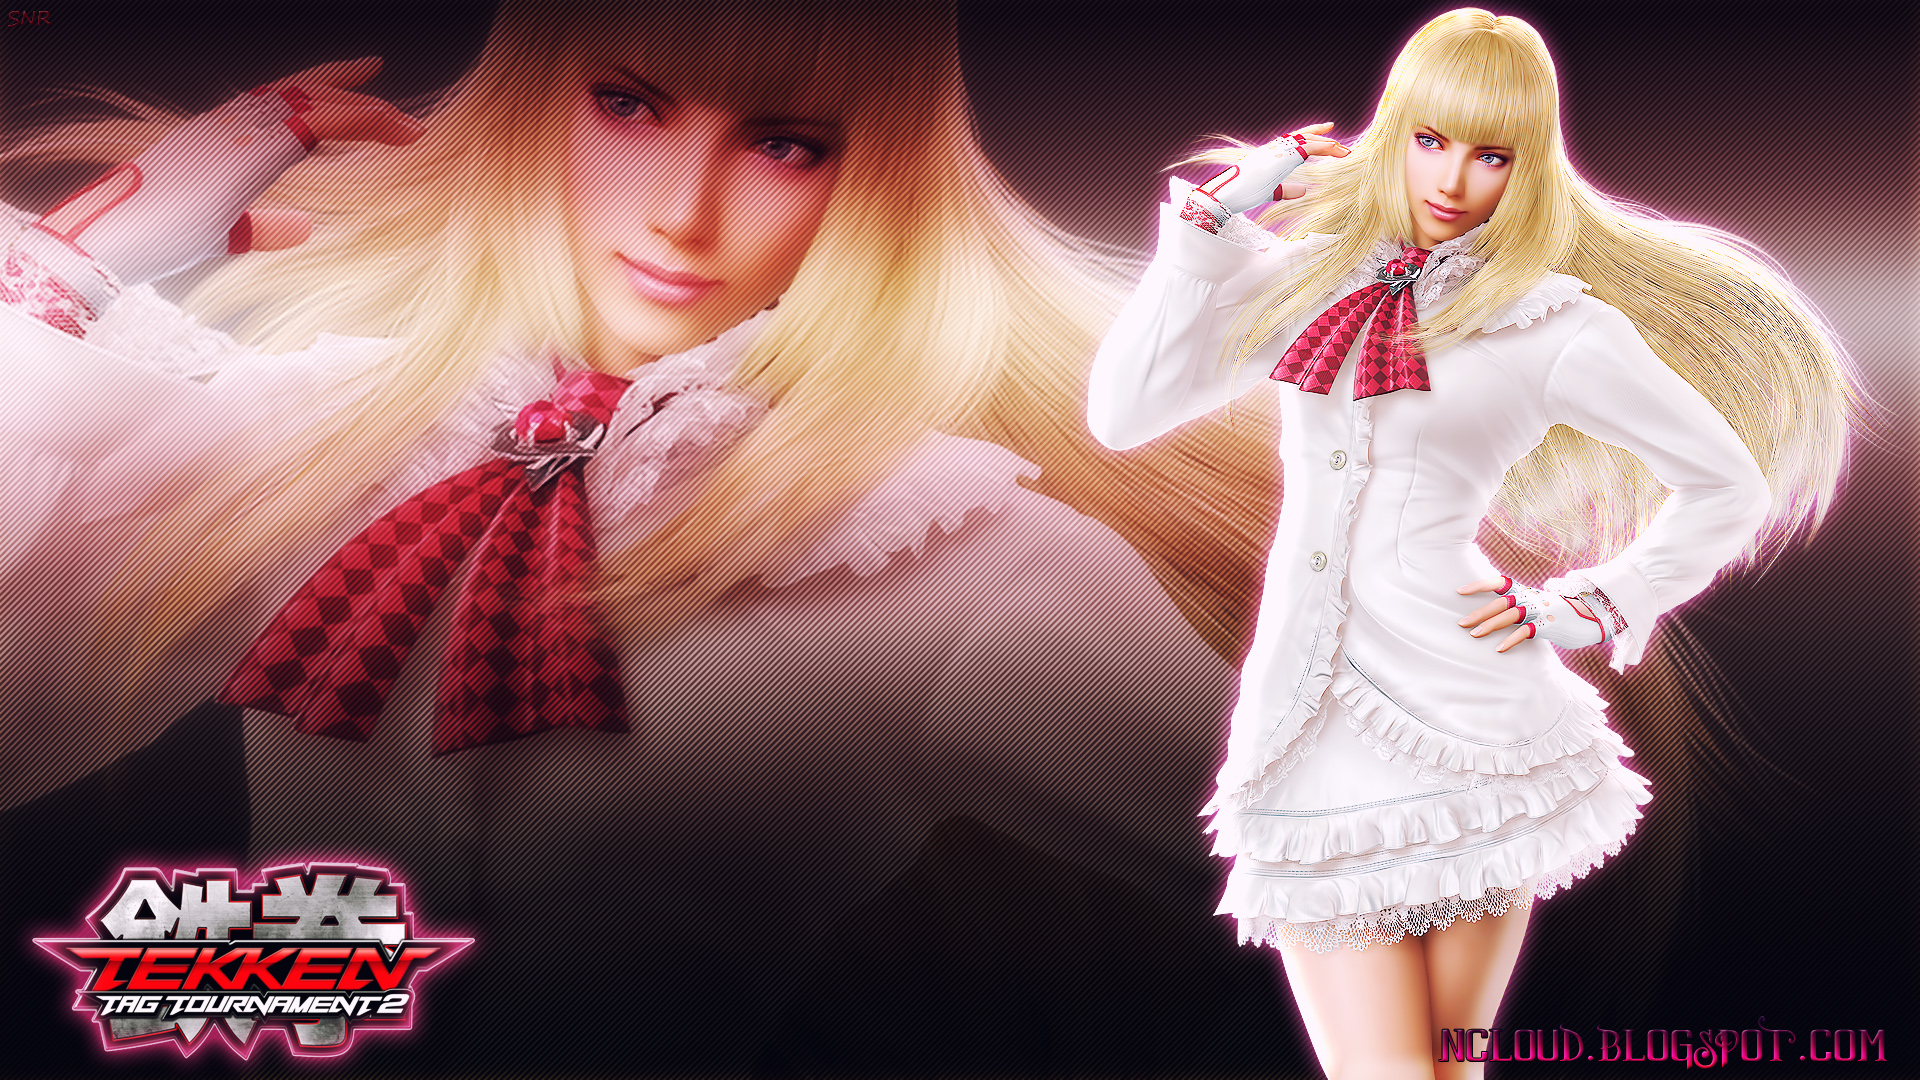 Games Movies Music Anime My Tekken Tag Tournament 2 Lili Wallpaper 1920x1080